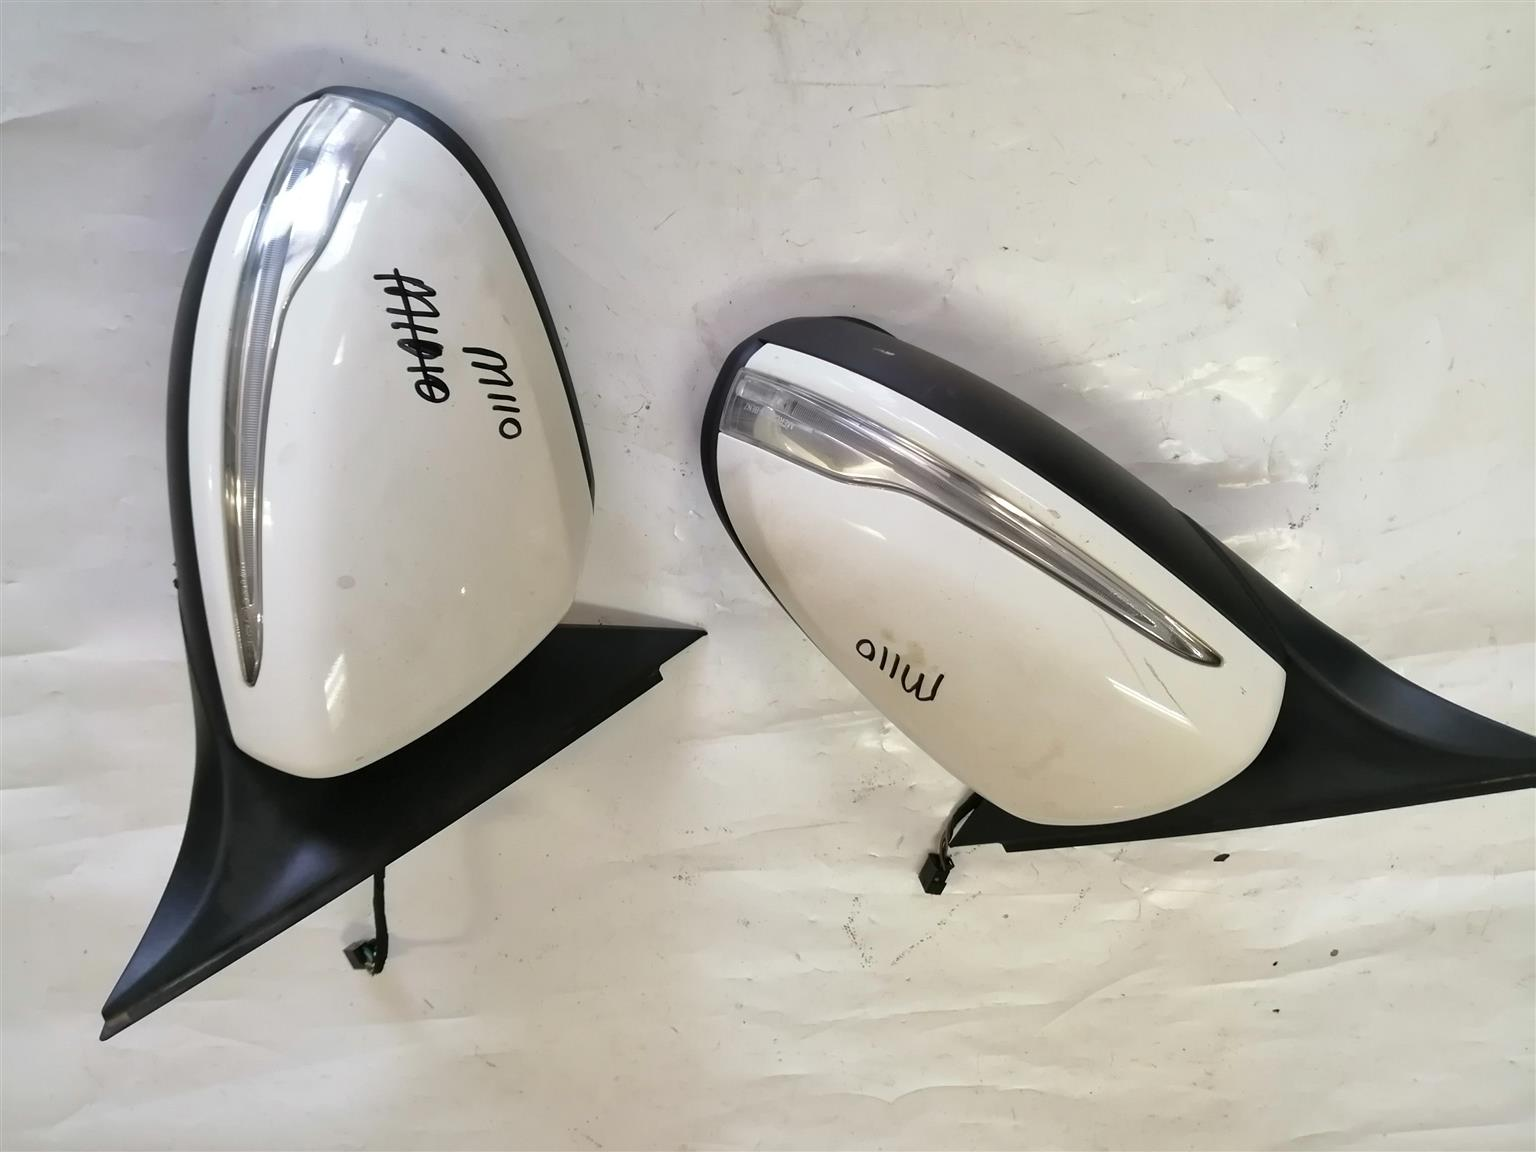 W205 Side Mirrors For Sale Preface